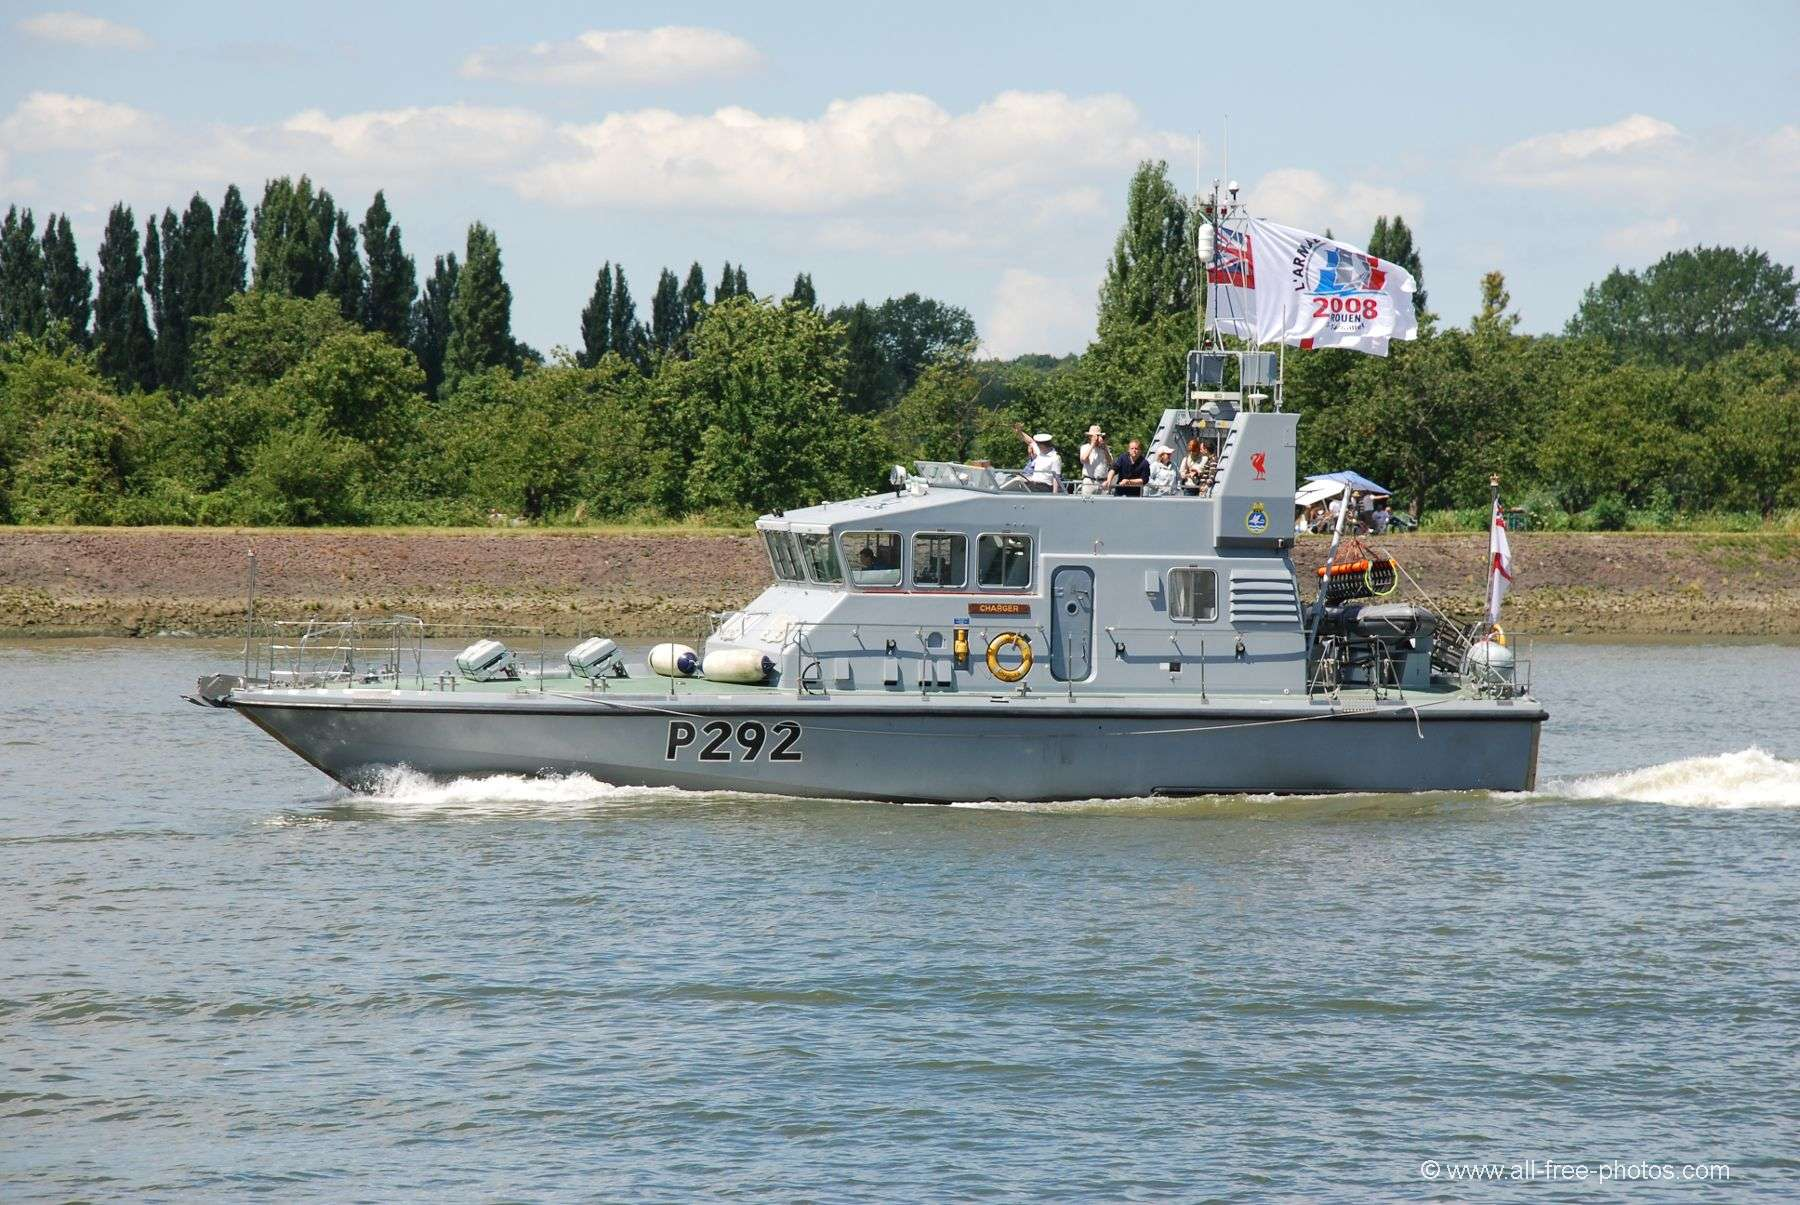 Patrol vessel HMS Charger - Great Britain